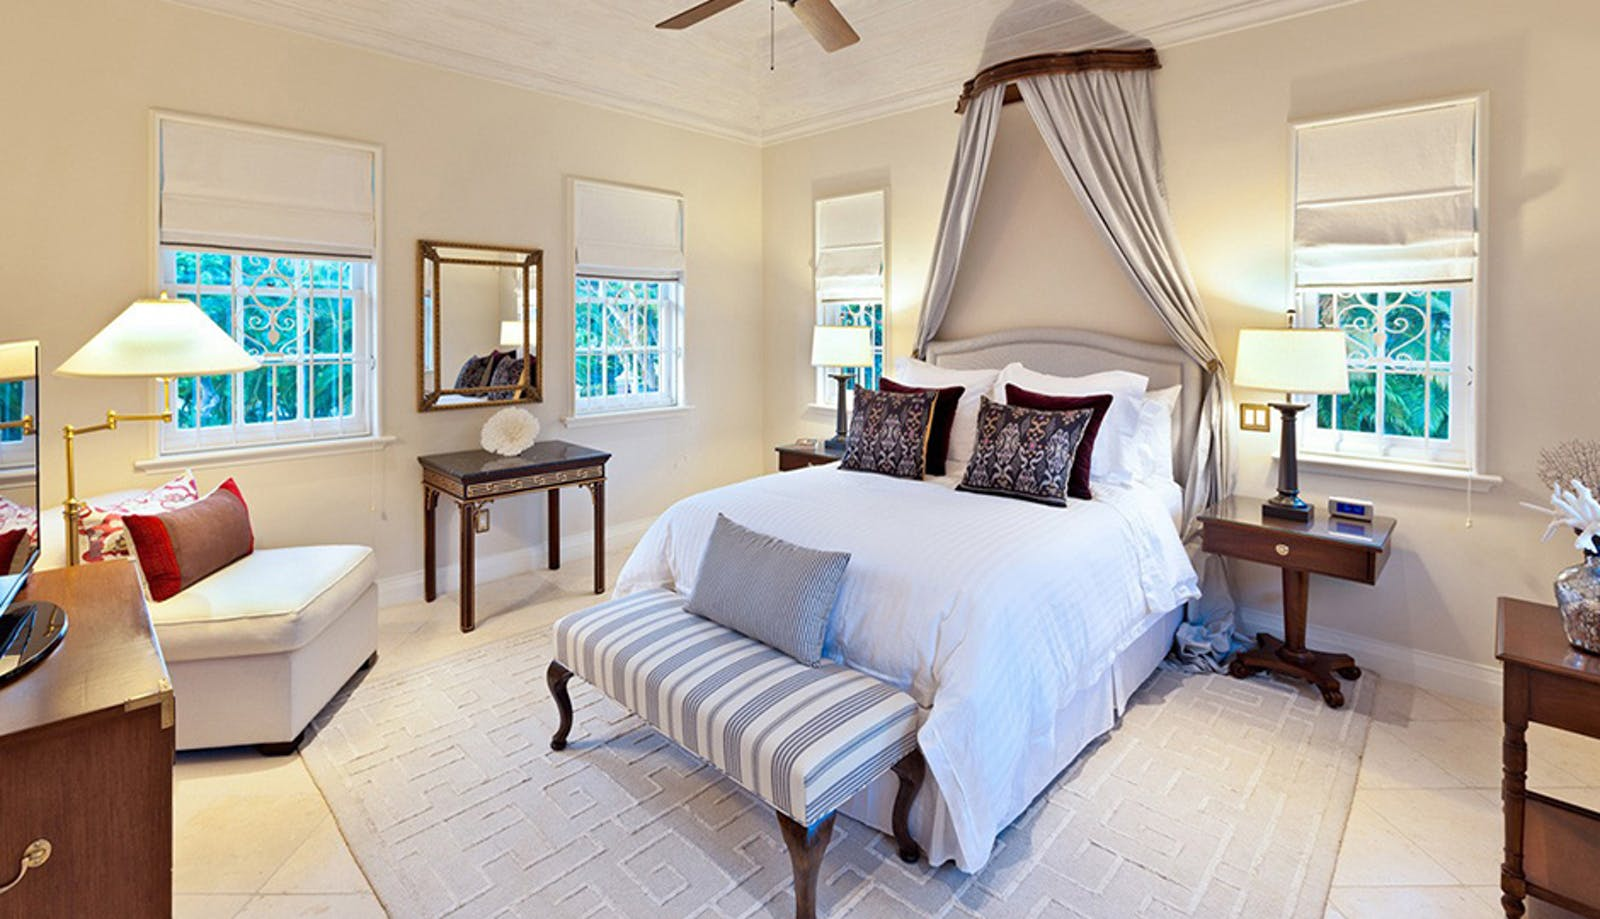 Bedroom at Windward House Villa, Sandy Lane Barbados